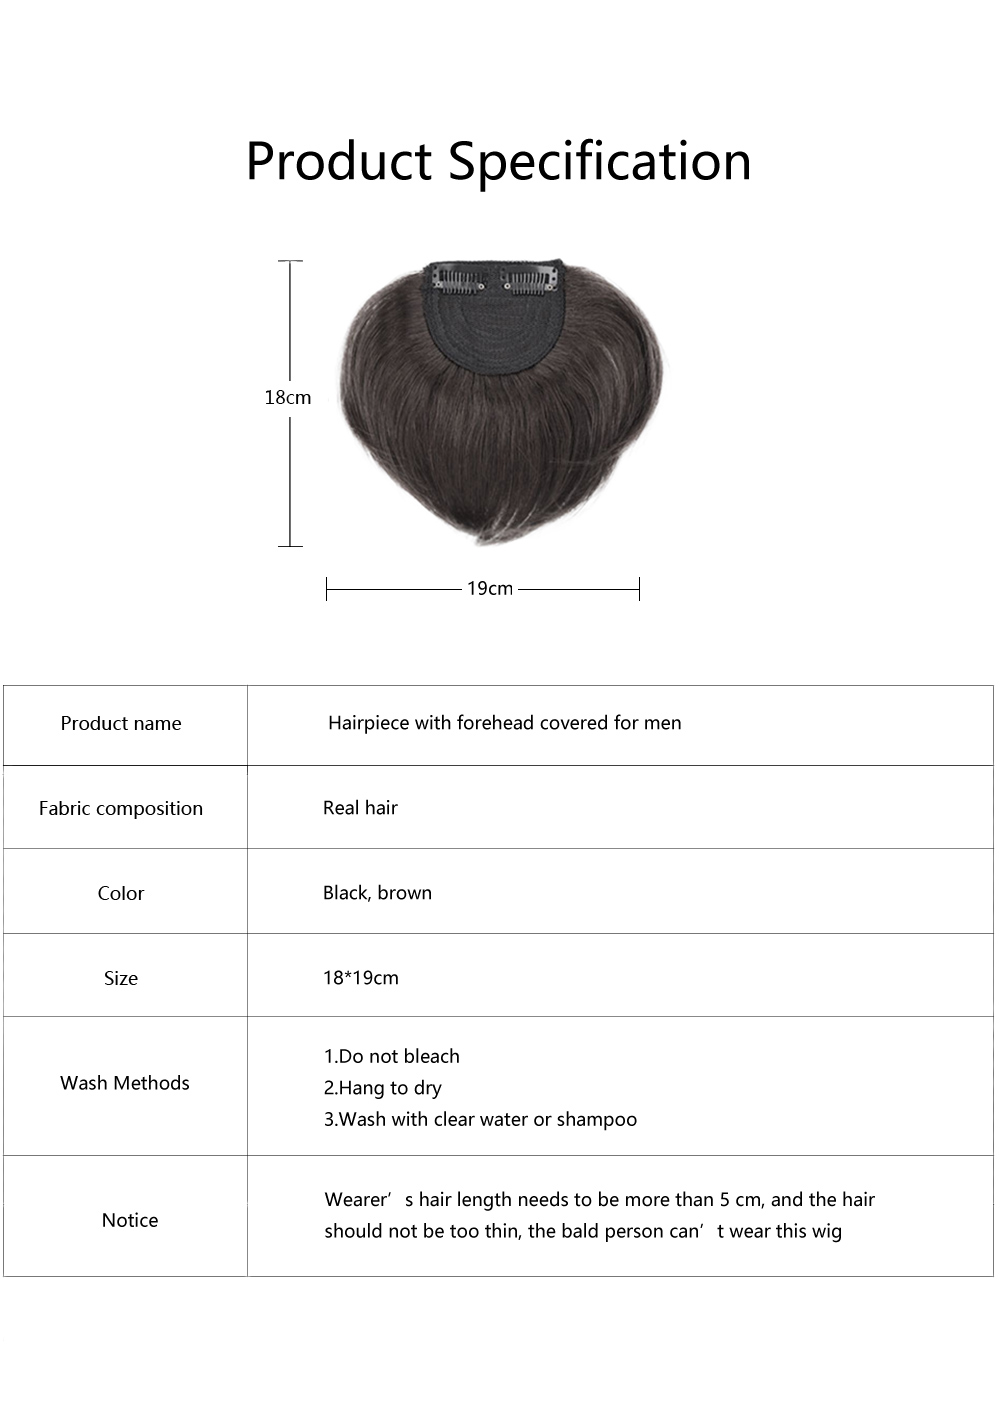 Men's Wig with Forehead Bang Covered, Hairpiece with Bang for Men, Natural Wig Hair Line for High Hairline Men 6